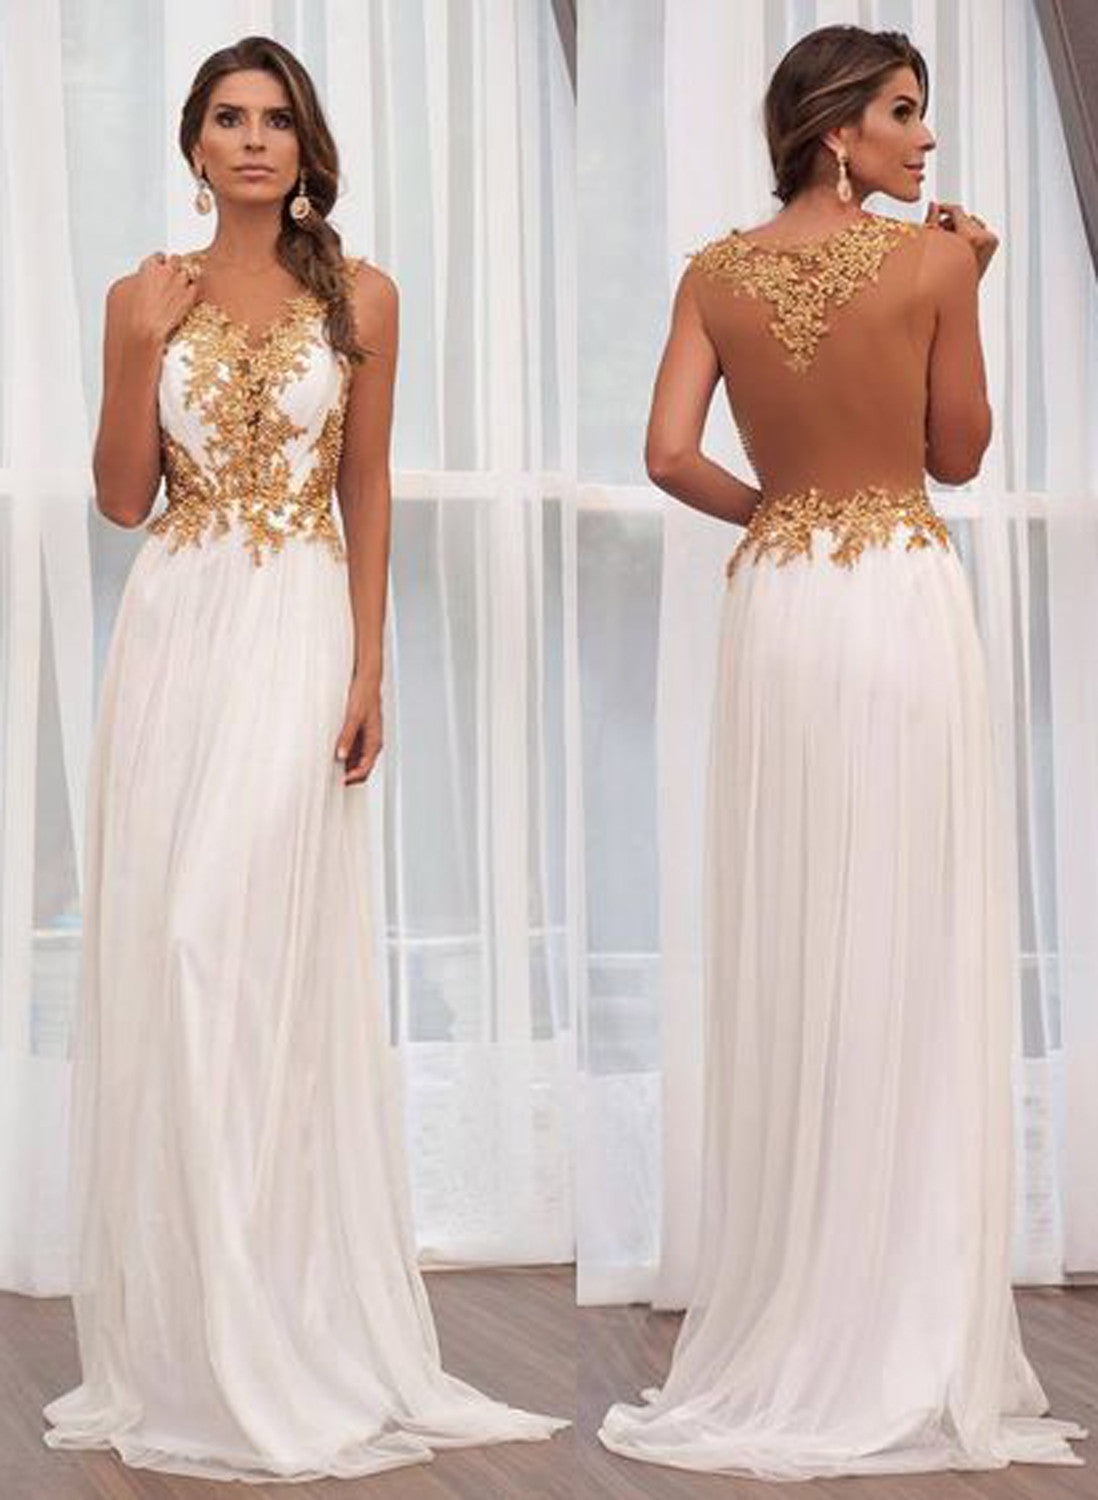 Illusion Long Maxi Prom Dress Gold White Floral Flower Lace  - MyBodiArt.com